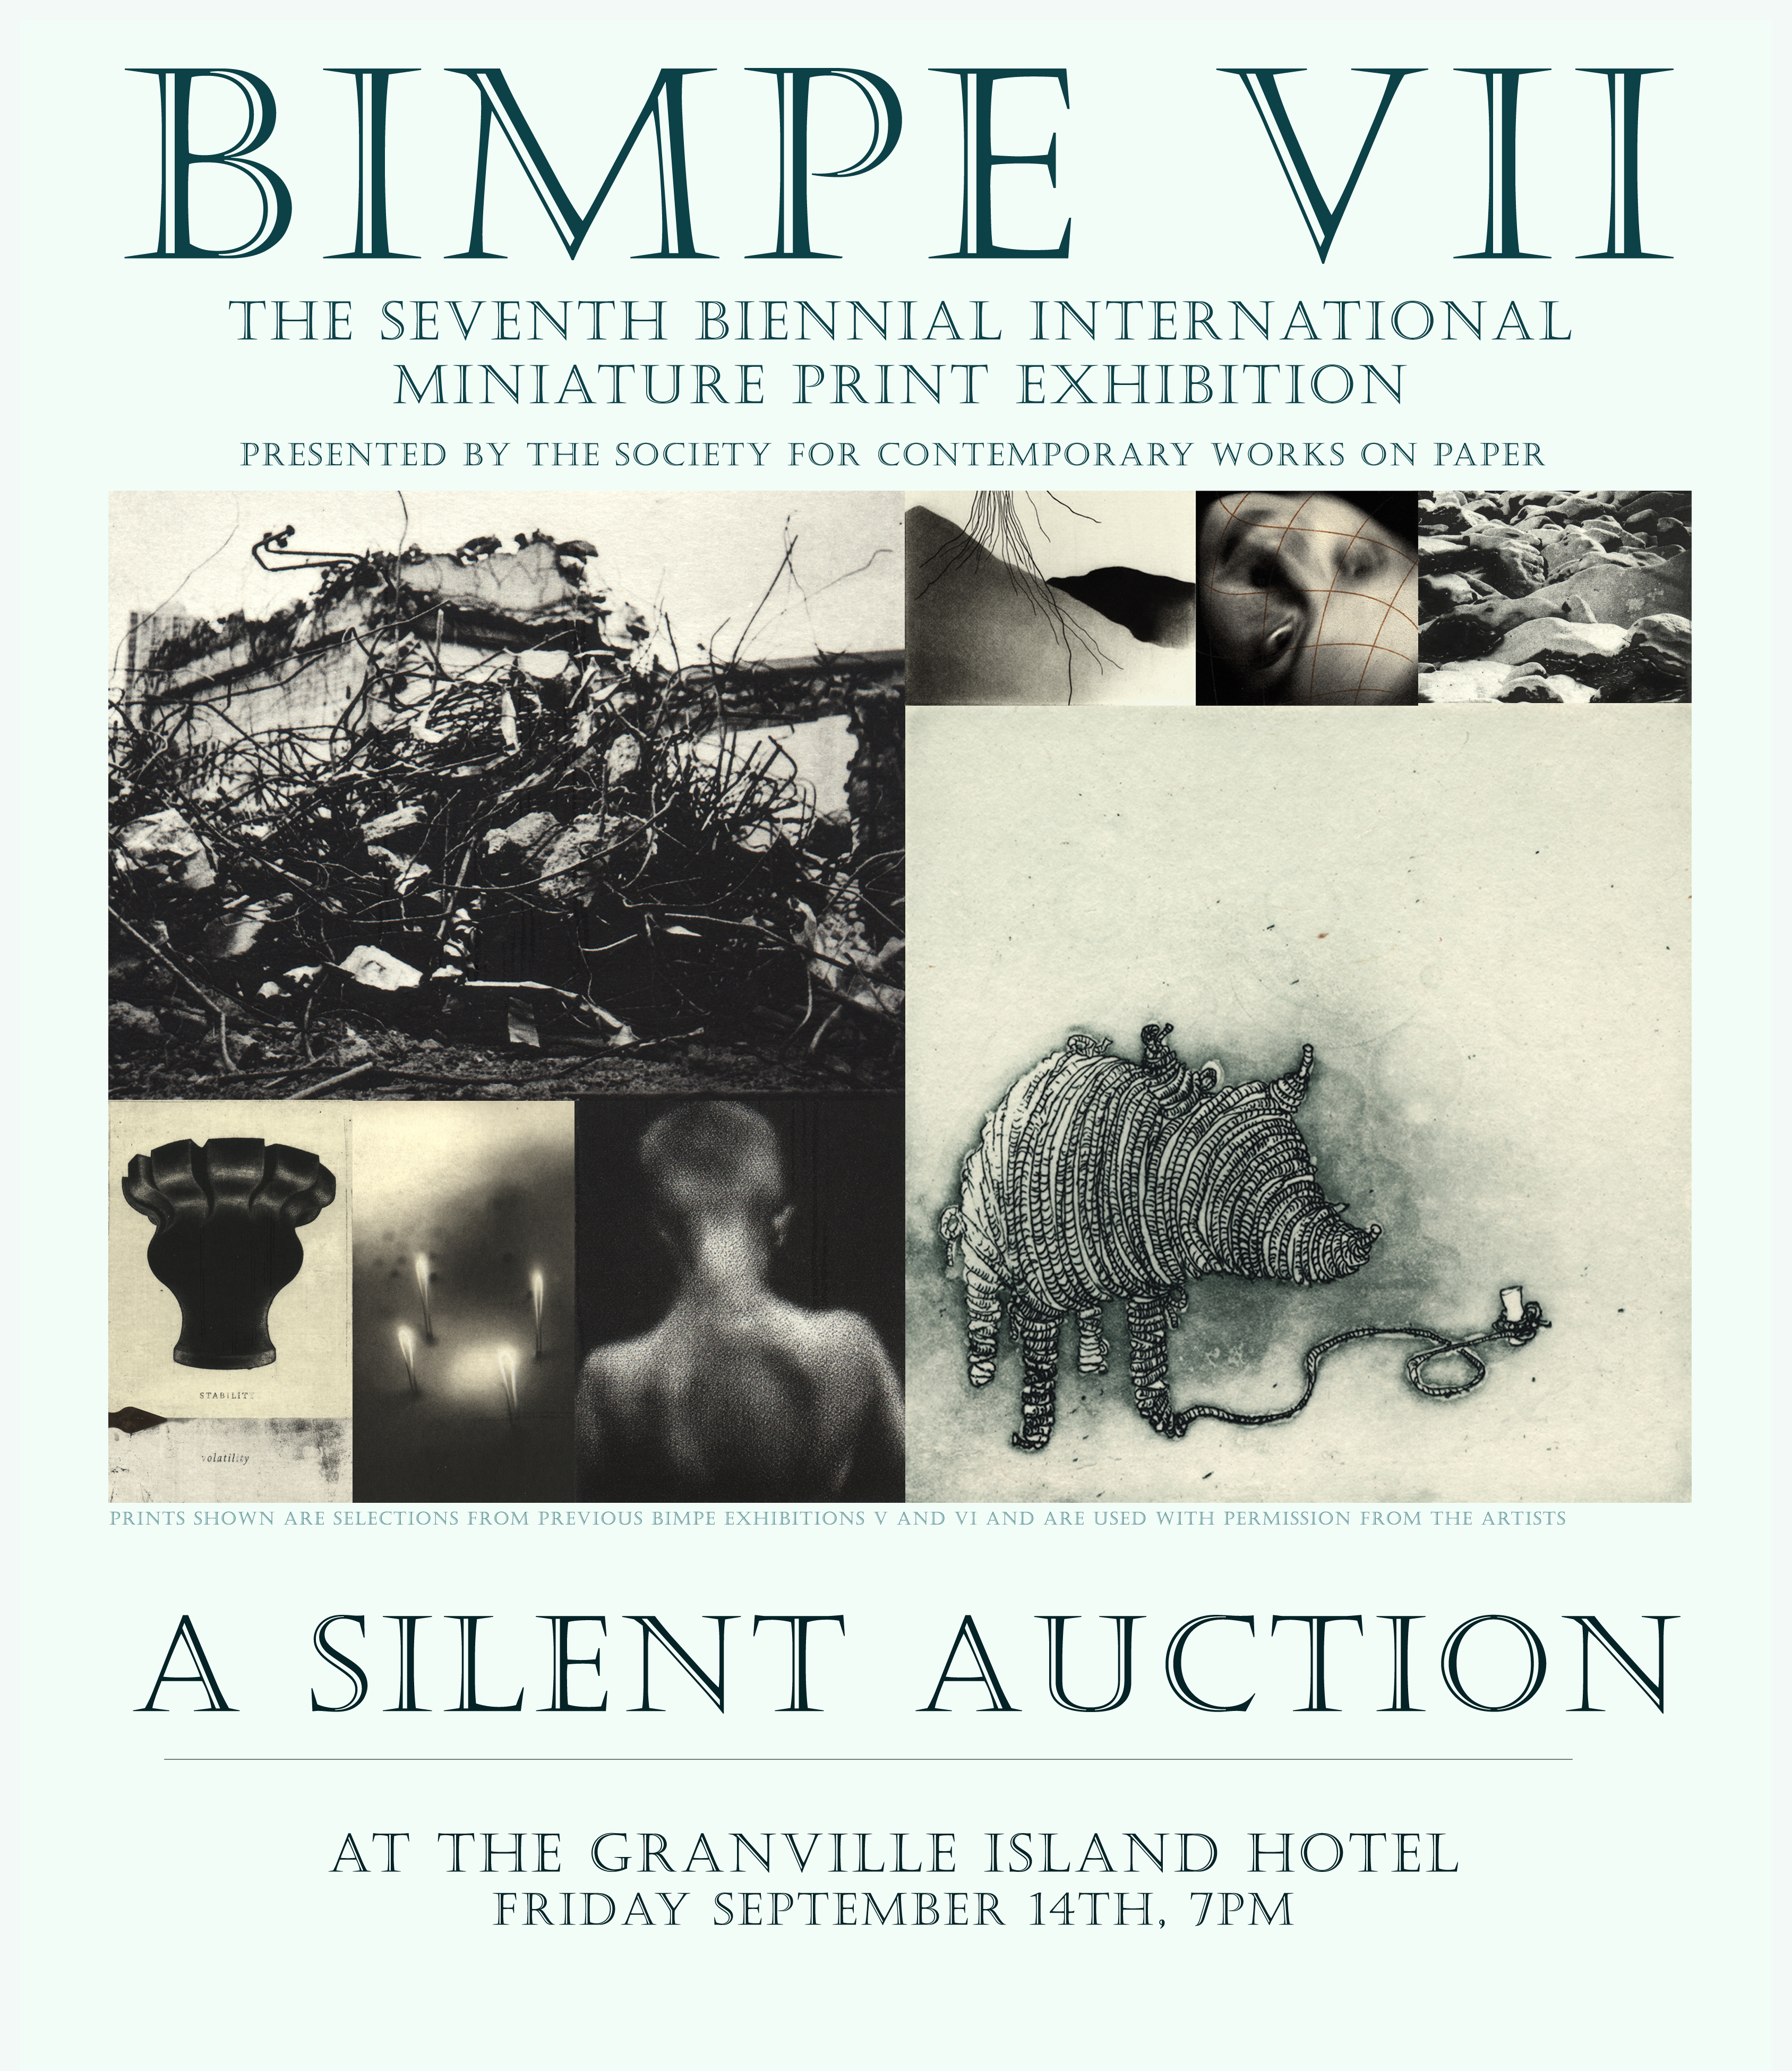 BIMPE Silent Auction